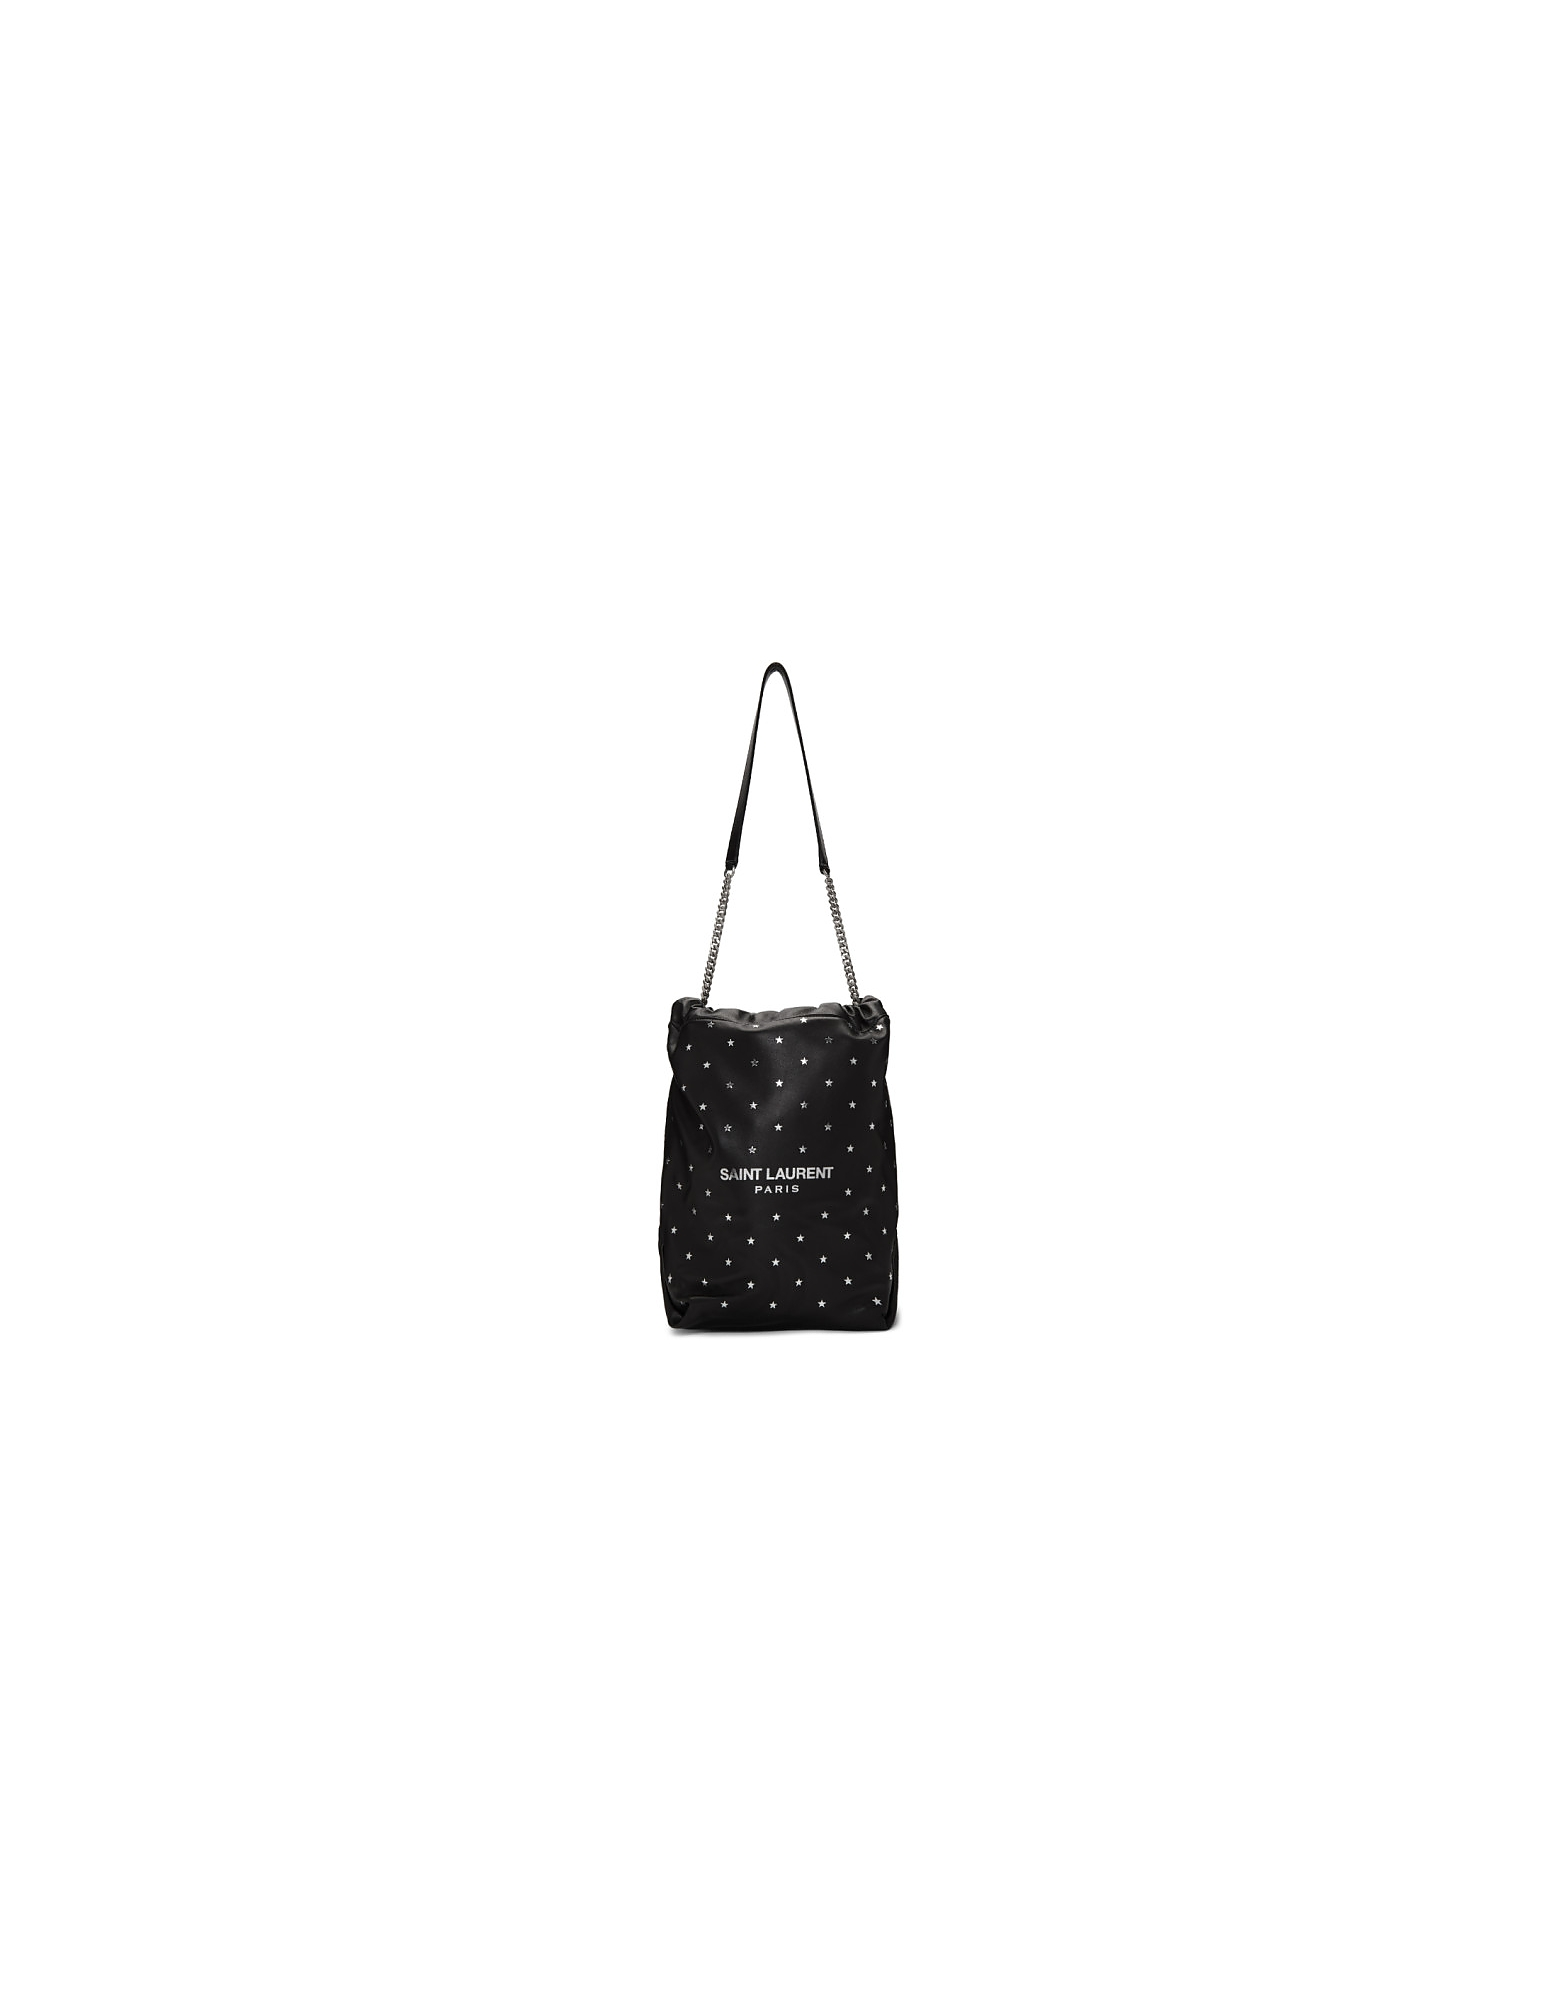 Saint Laurent Designer Handbags, Black All Over Silver Star Teddy Bucket Bag